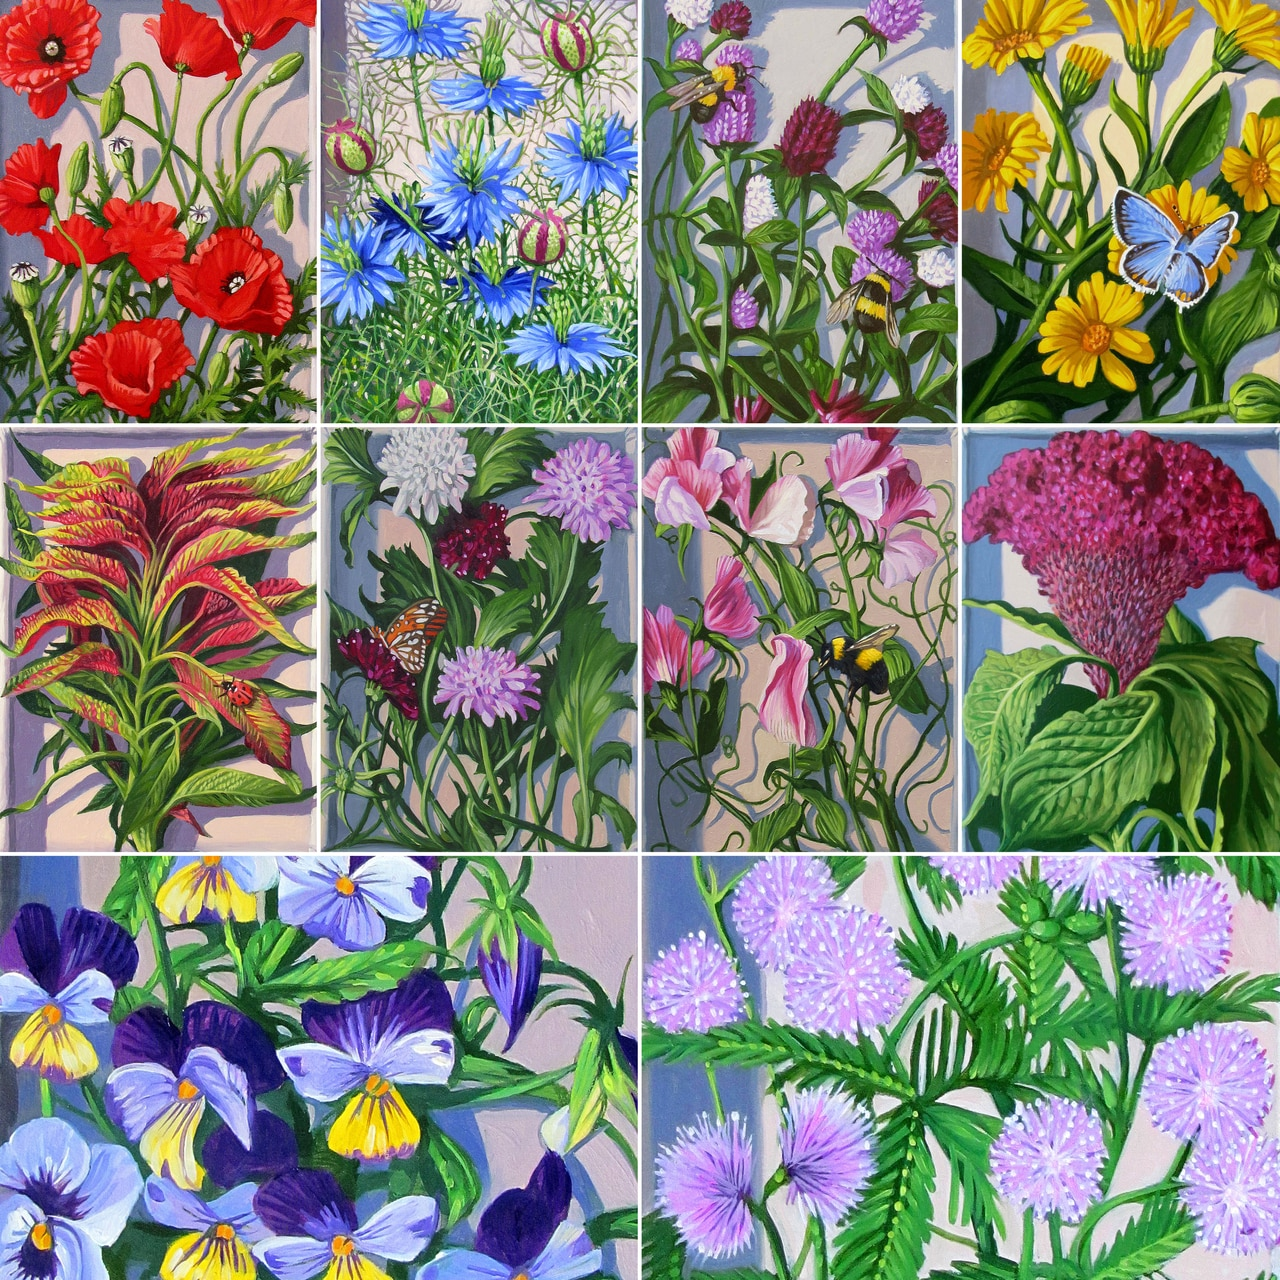 Favorite Flowers Seed Collection